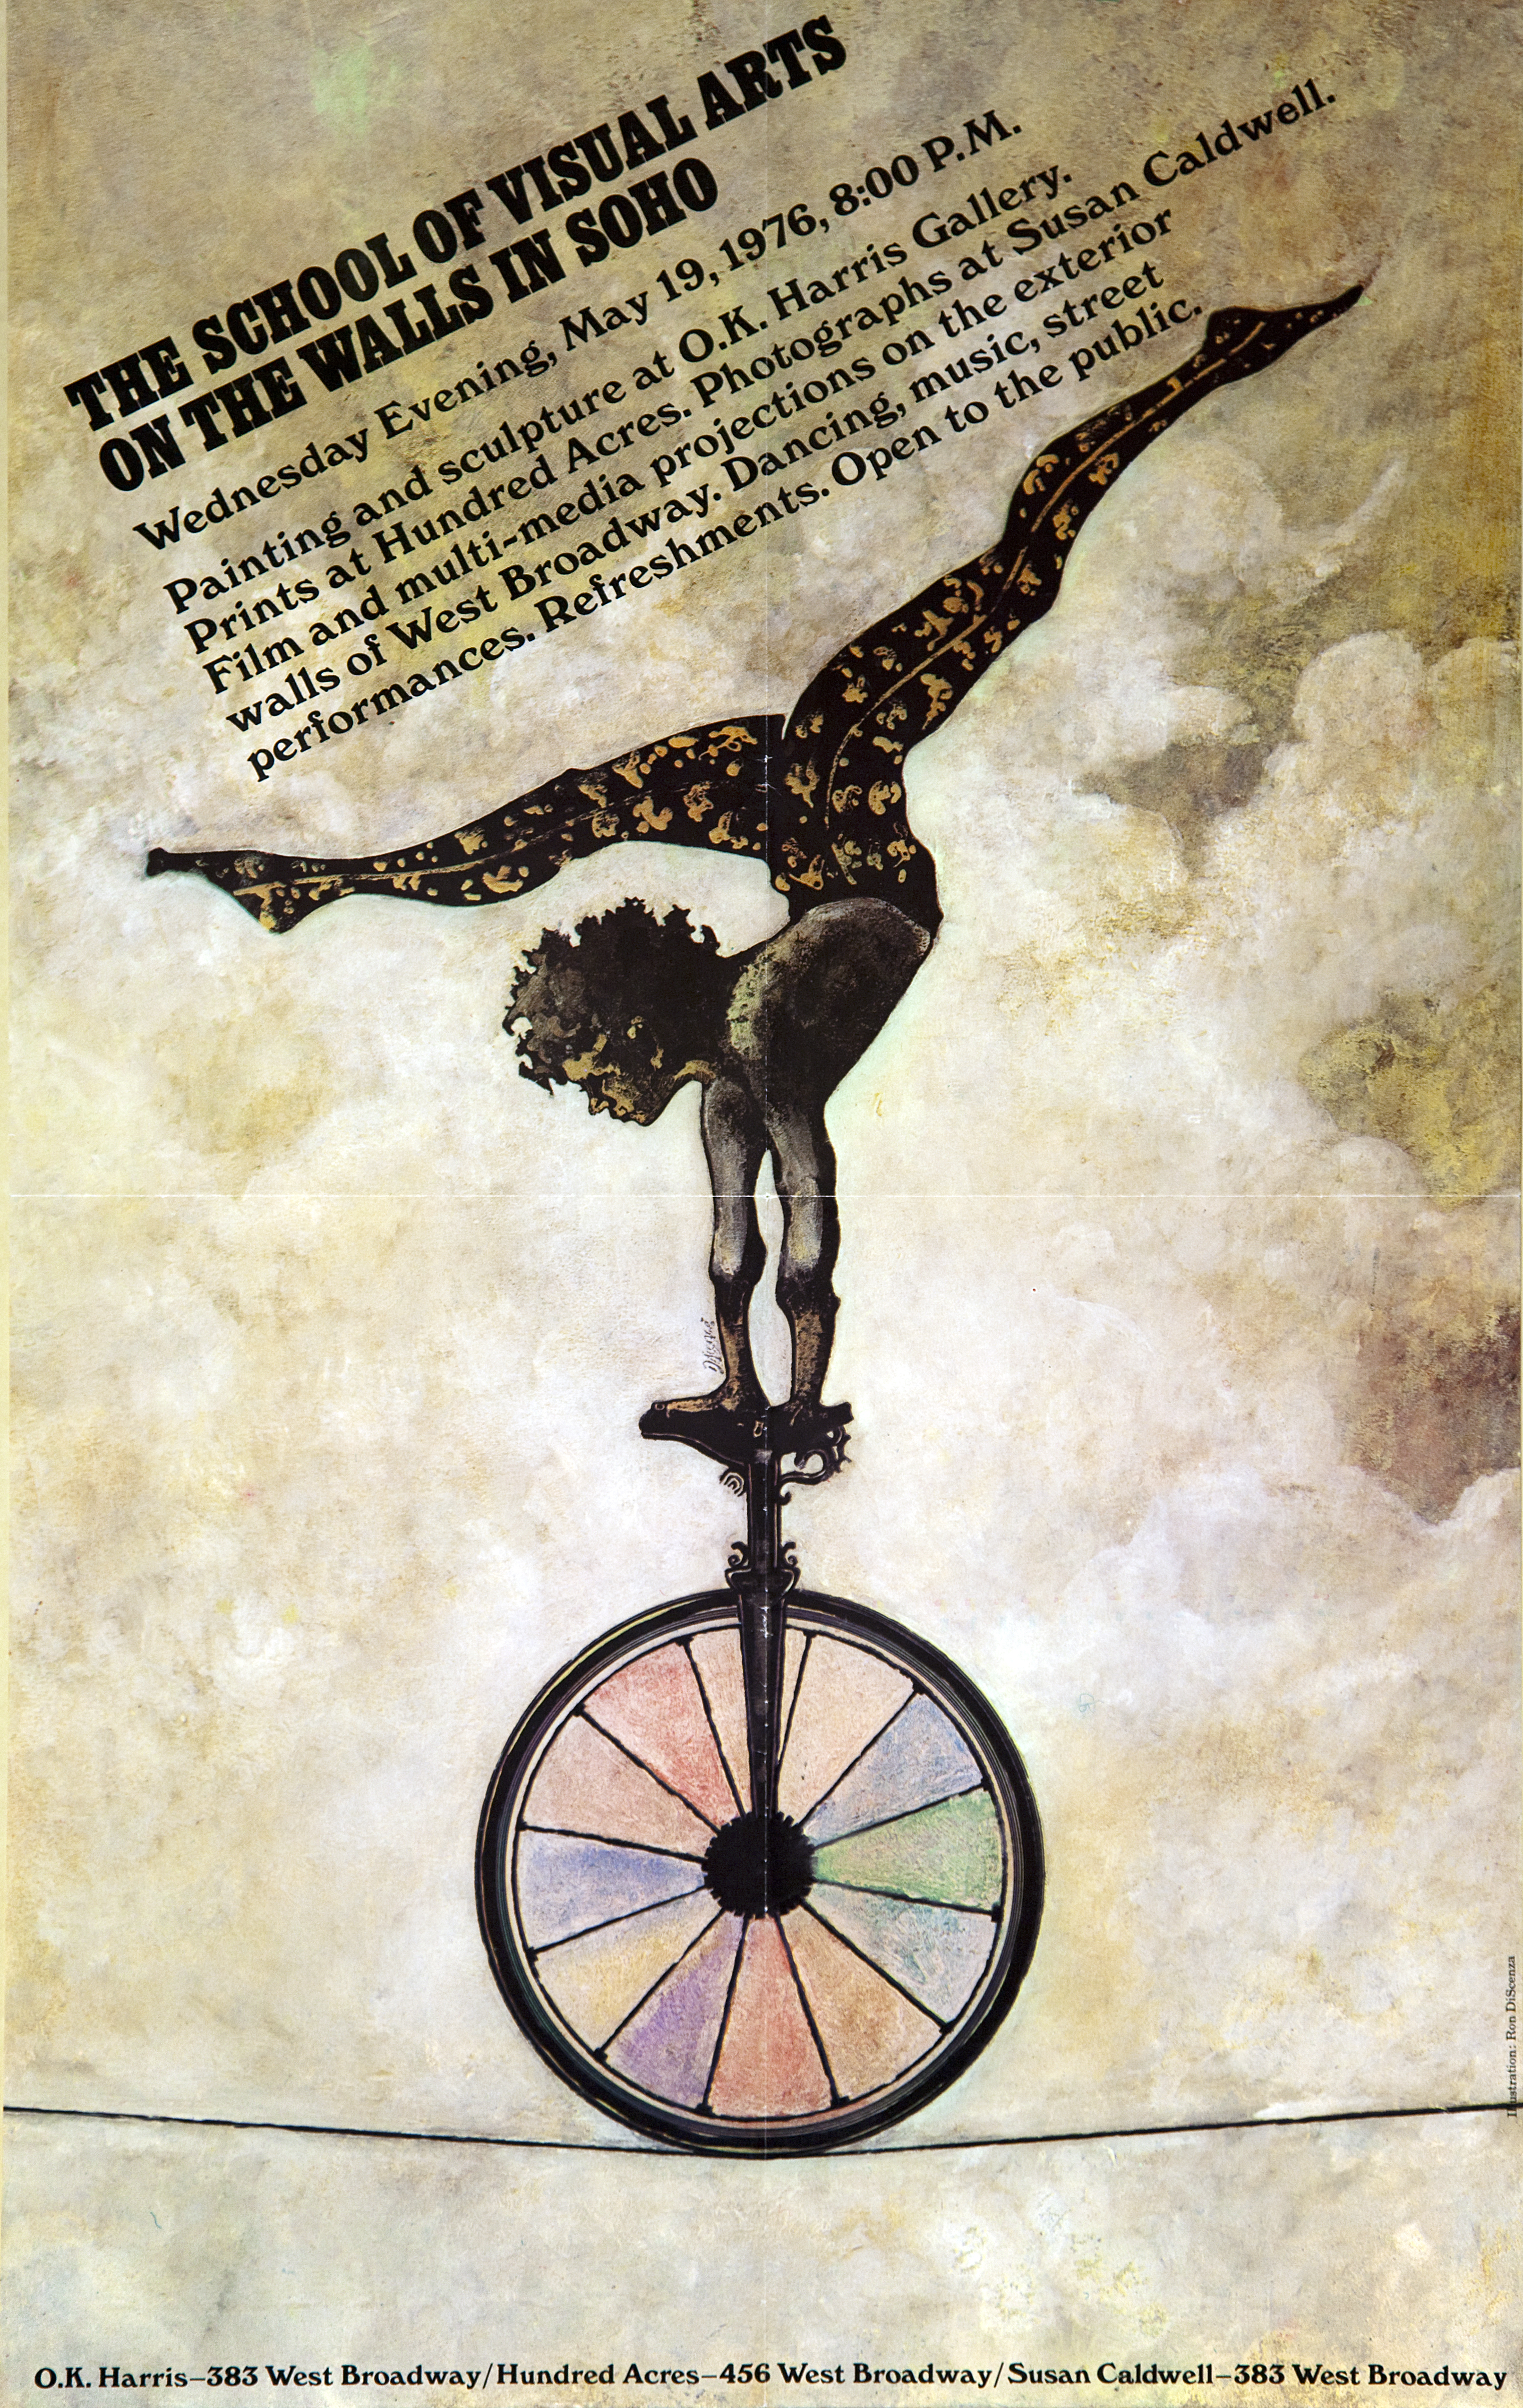 Exhibition poster with an illustration of a dark figure doing a handstand on a unicycle which is balanced on a tightrope.